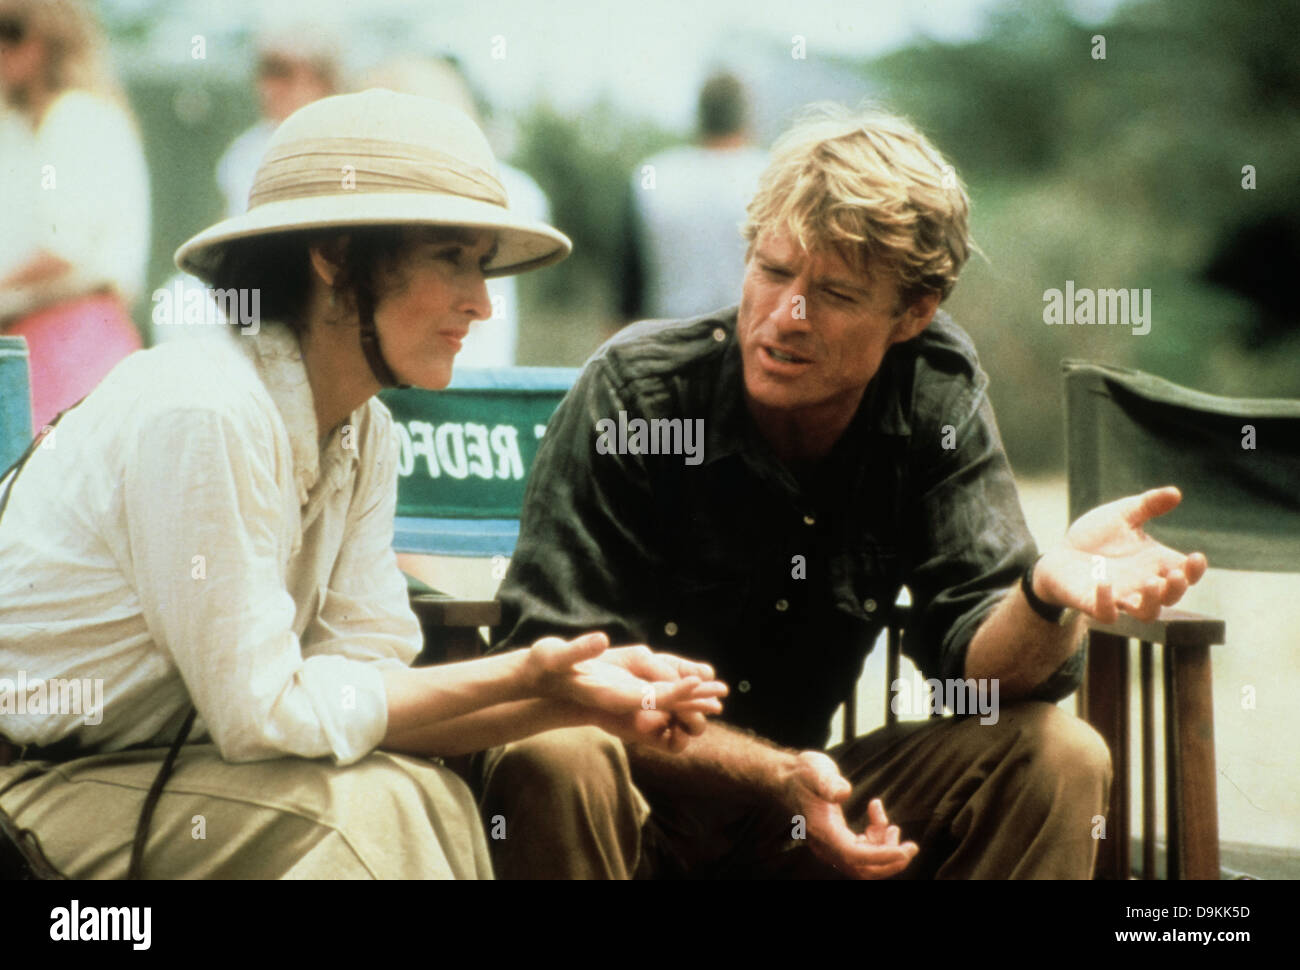 Robert Redford e Meryl Streep out of africa 1985 Immagini Stock